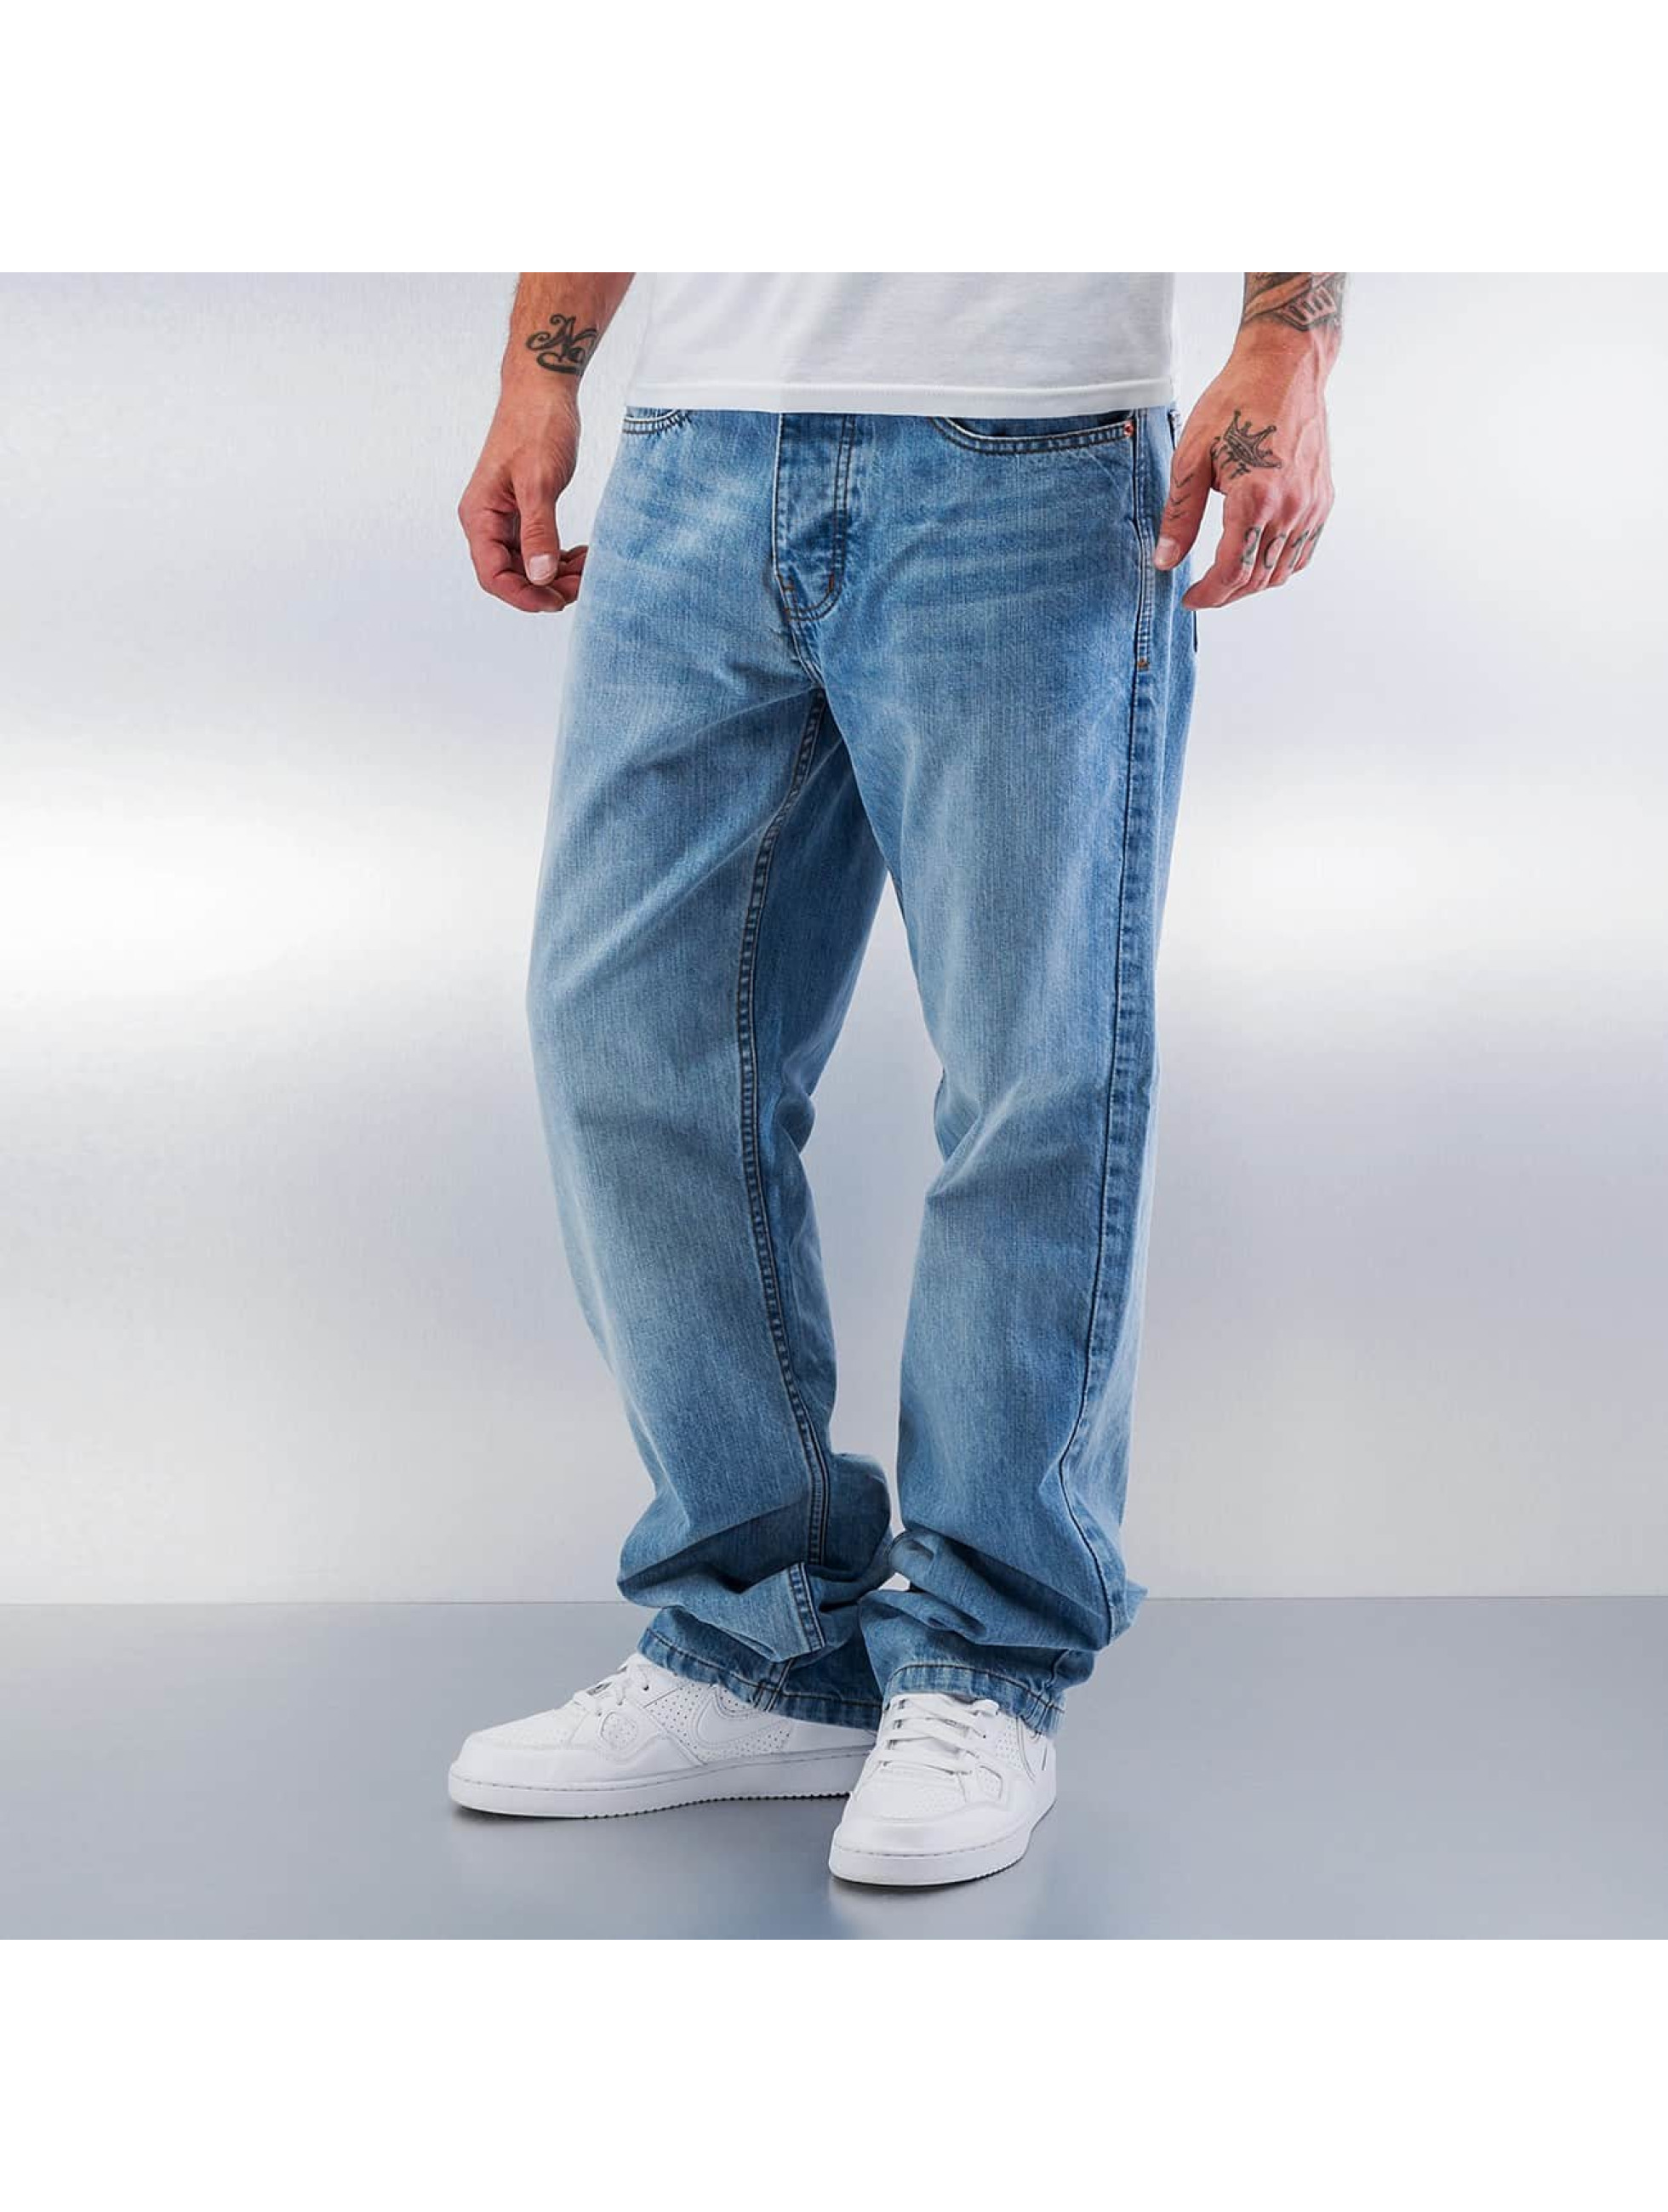 Loose Fit Jeans. Loosen up and relax in a pair of loose fit jeans. This comfortable cut gives you a break from slim or skinny jeans and offers an easy look for any casual outfit. Get yourself a pair and choose from a variety of rinses, washes and shades of blue.